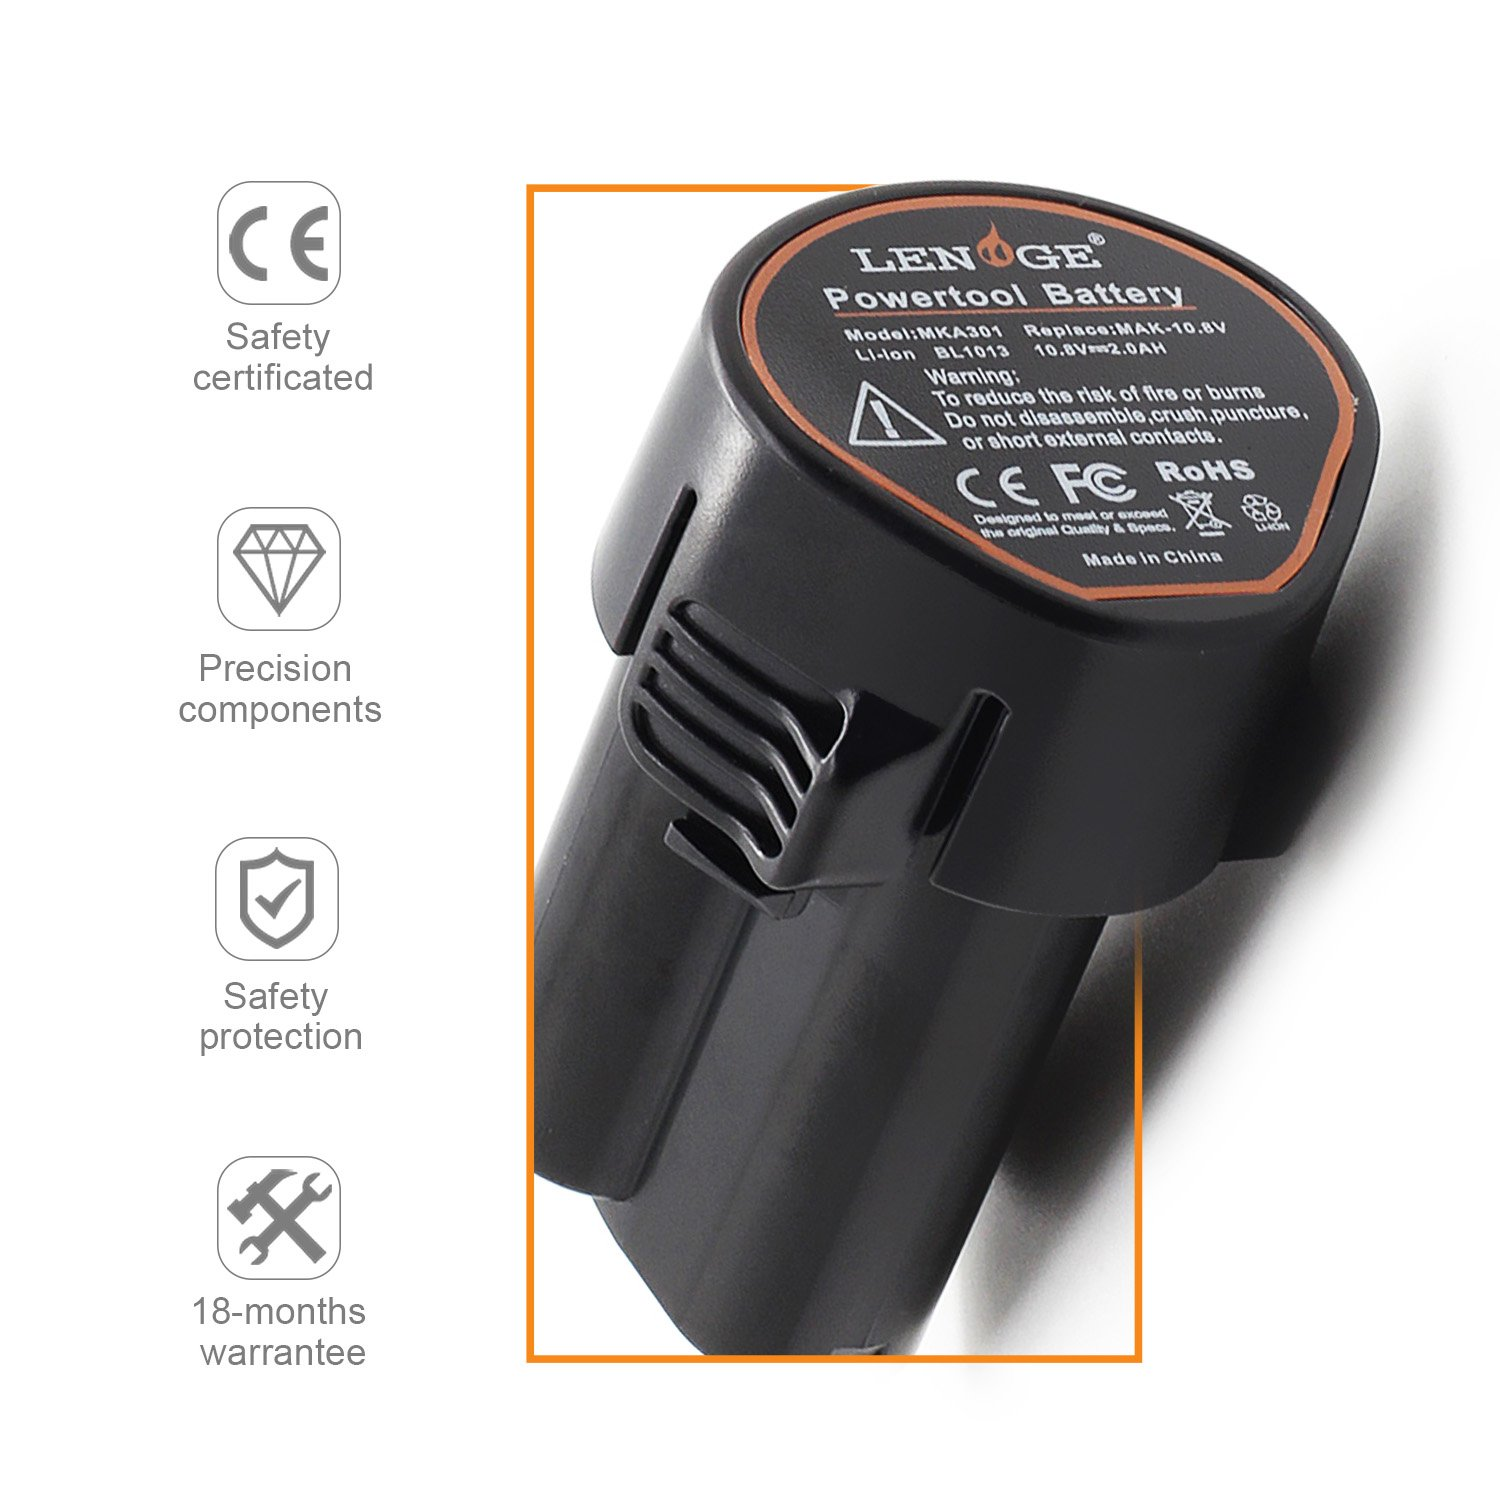 LENOGE Battery 2Ah 10.8V Replacement for Makita BL1013 BL1014 Drill DF030D LCT203W 194550-6 194551-4 FD02W 194550-6 194551-4 18months warranty